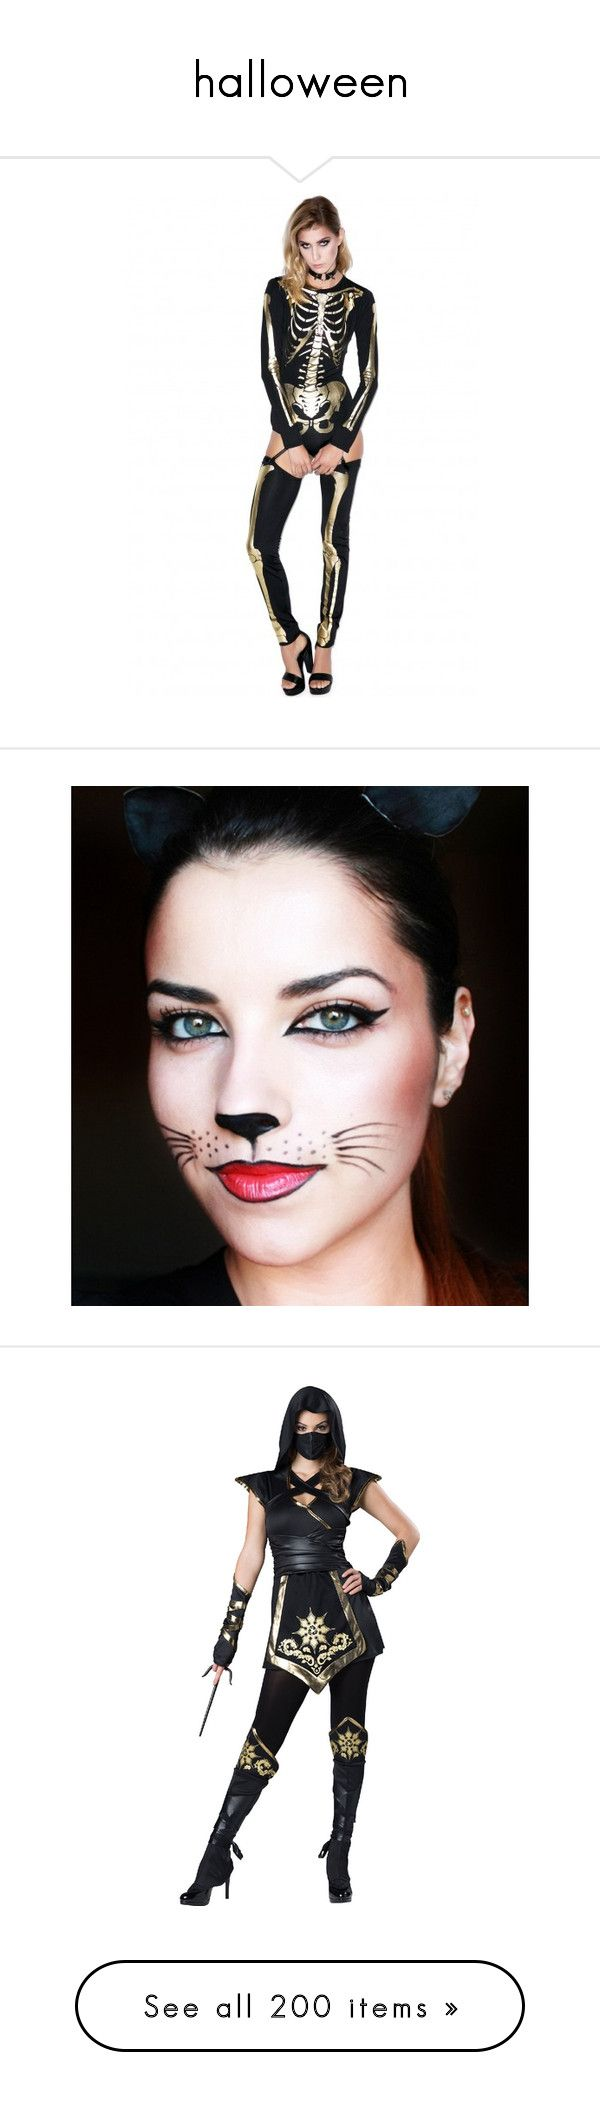 """""""halloween"""" by brunasthefanny ❤ liked on Polyvore featuring costumes, adult costume, sexy nurse costume, sexy cop costume, sexy adult halloween costumes, adult cat costume, beauty products, makeup, eye makeup and eyeliner"""